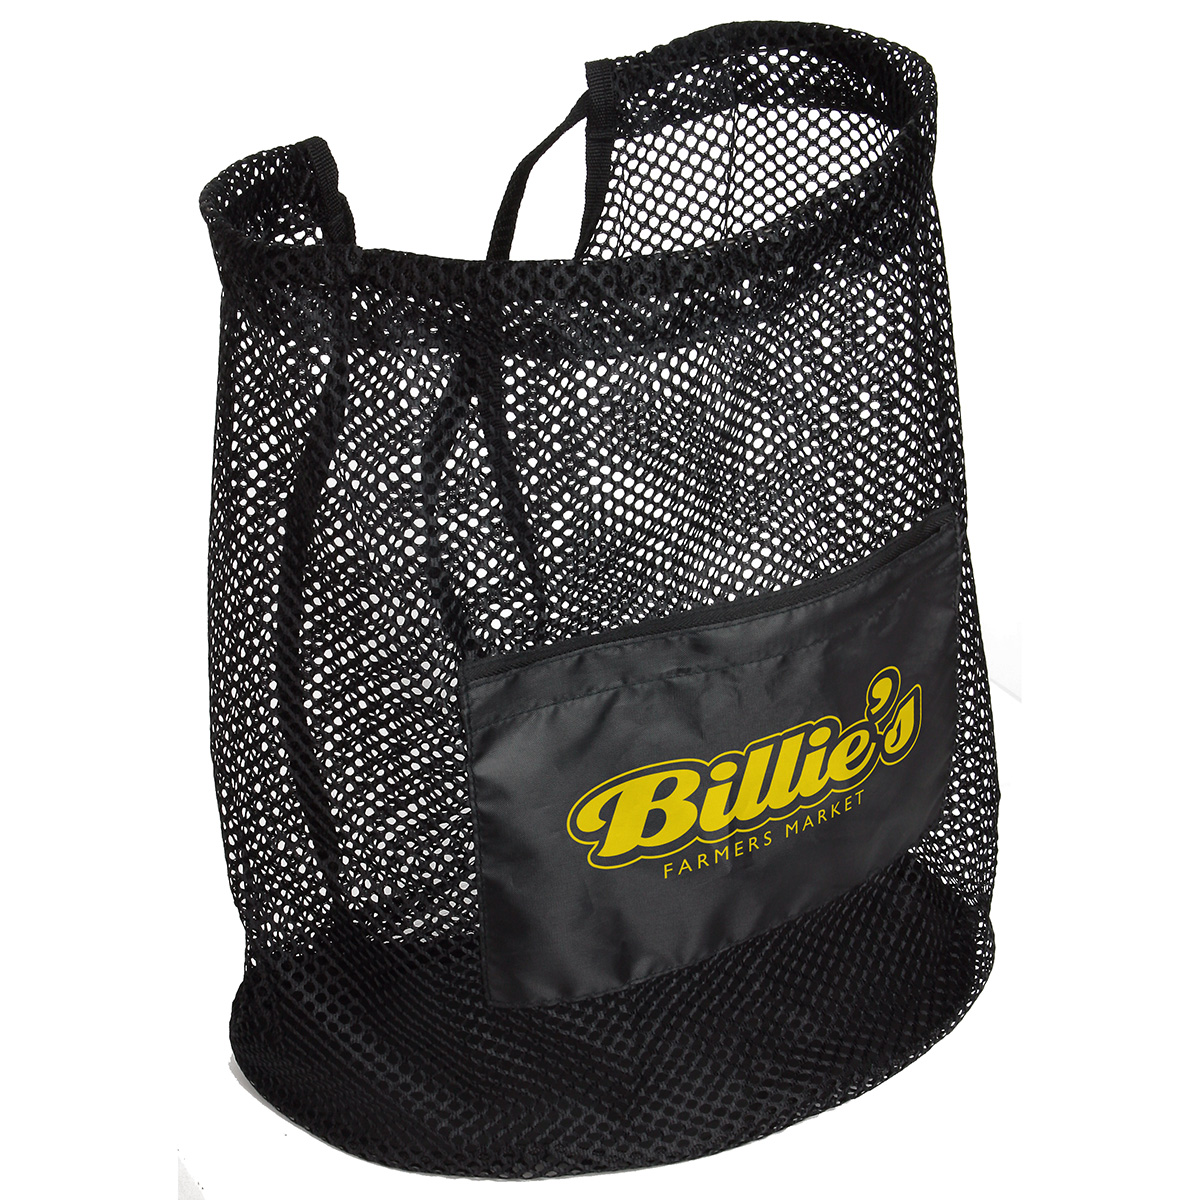 Flex Mesh Drawstring Bag, WBA-FM11 - 1 Colour Imprint